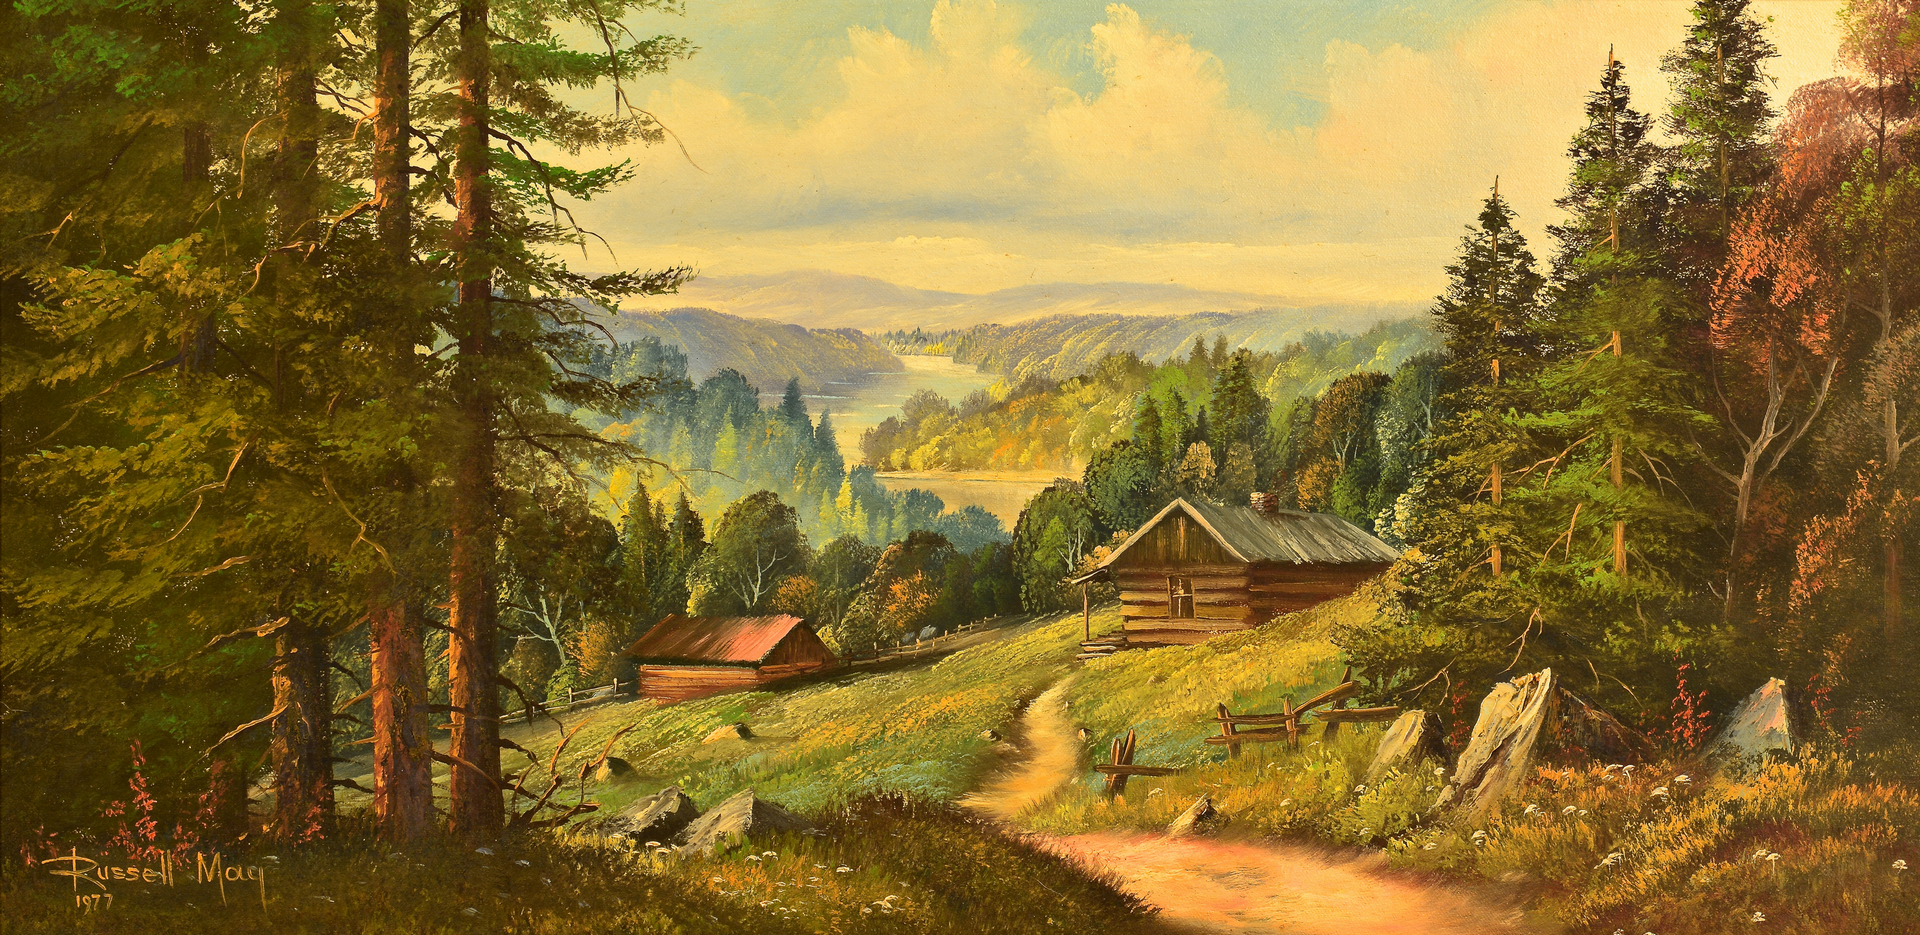 Lot 655 Russell May Oil On Canvas Mountain Scene